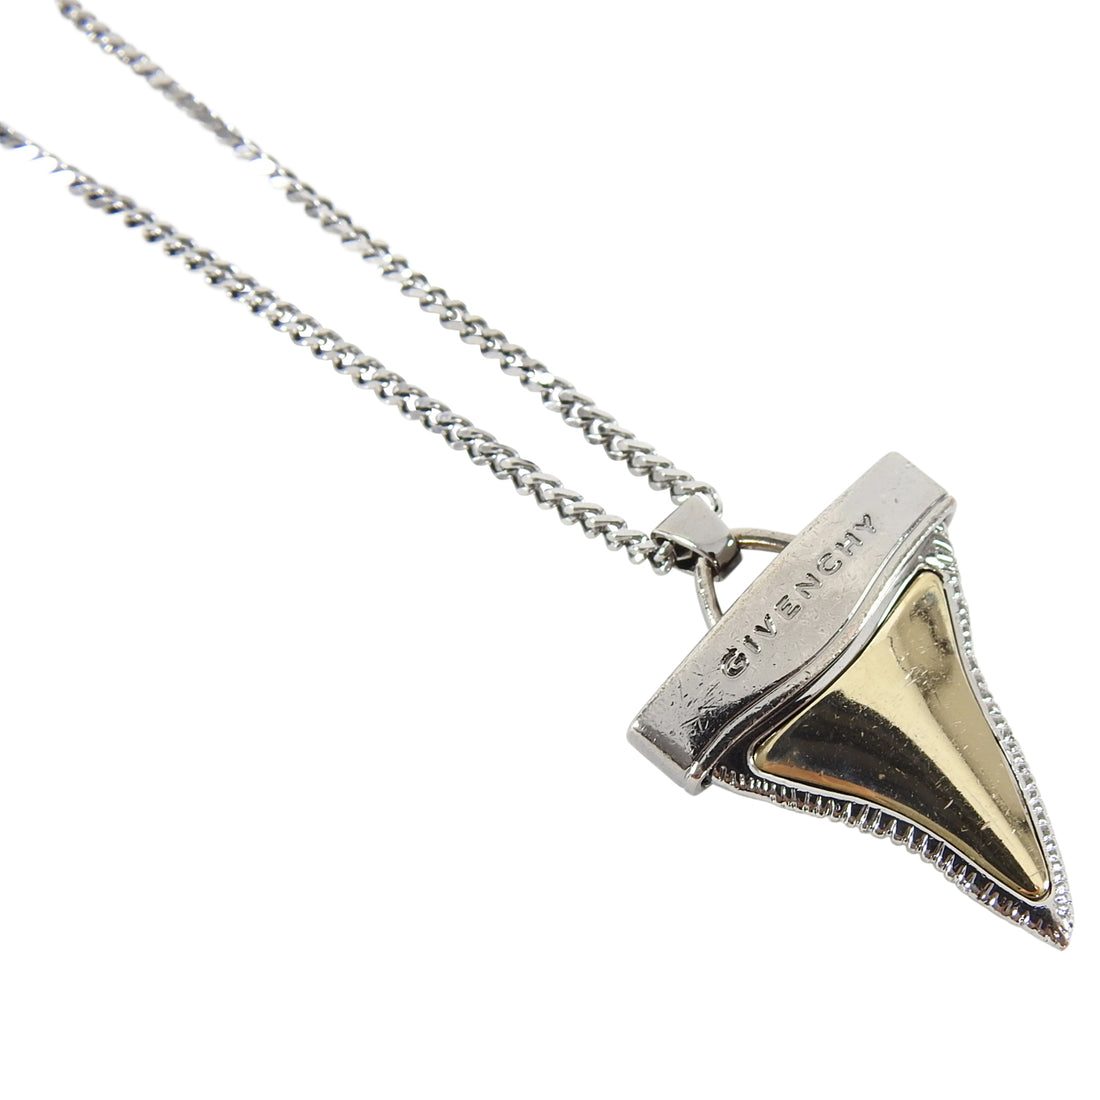 Givenchy Small Double Layered Shark Tooth Necklace